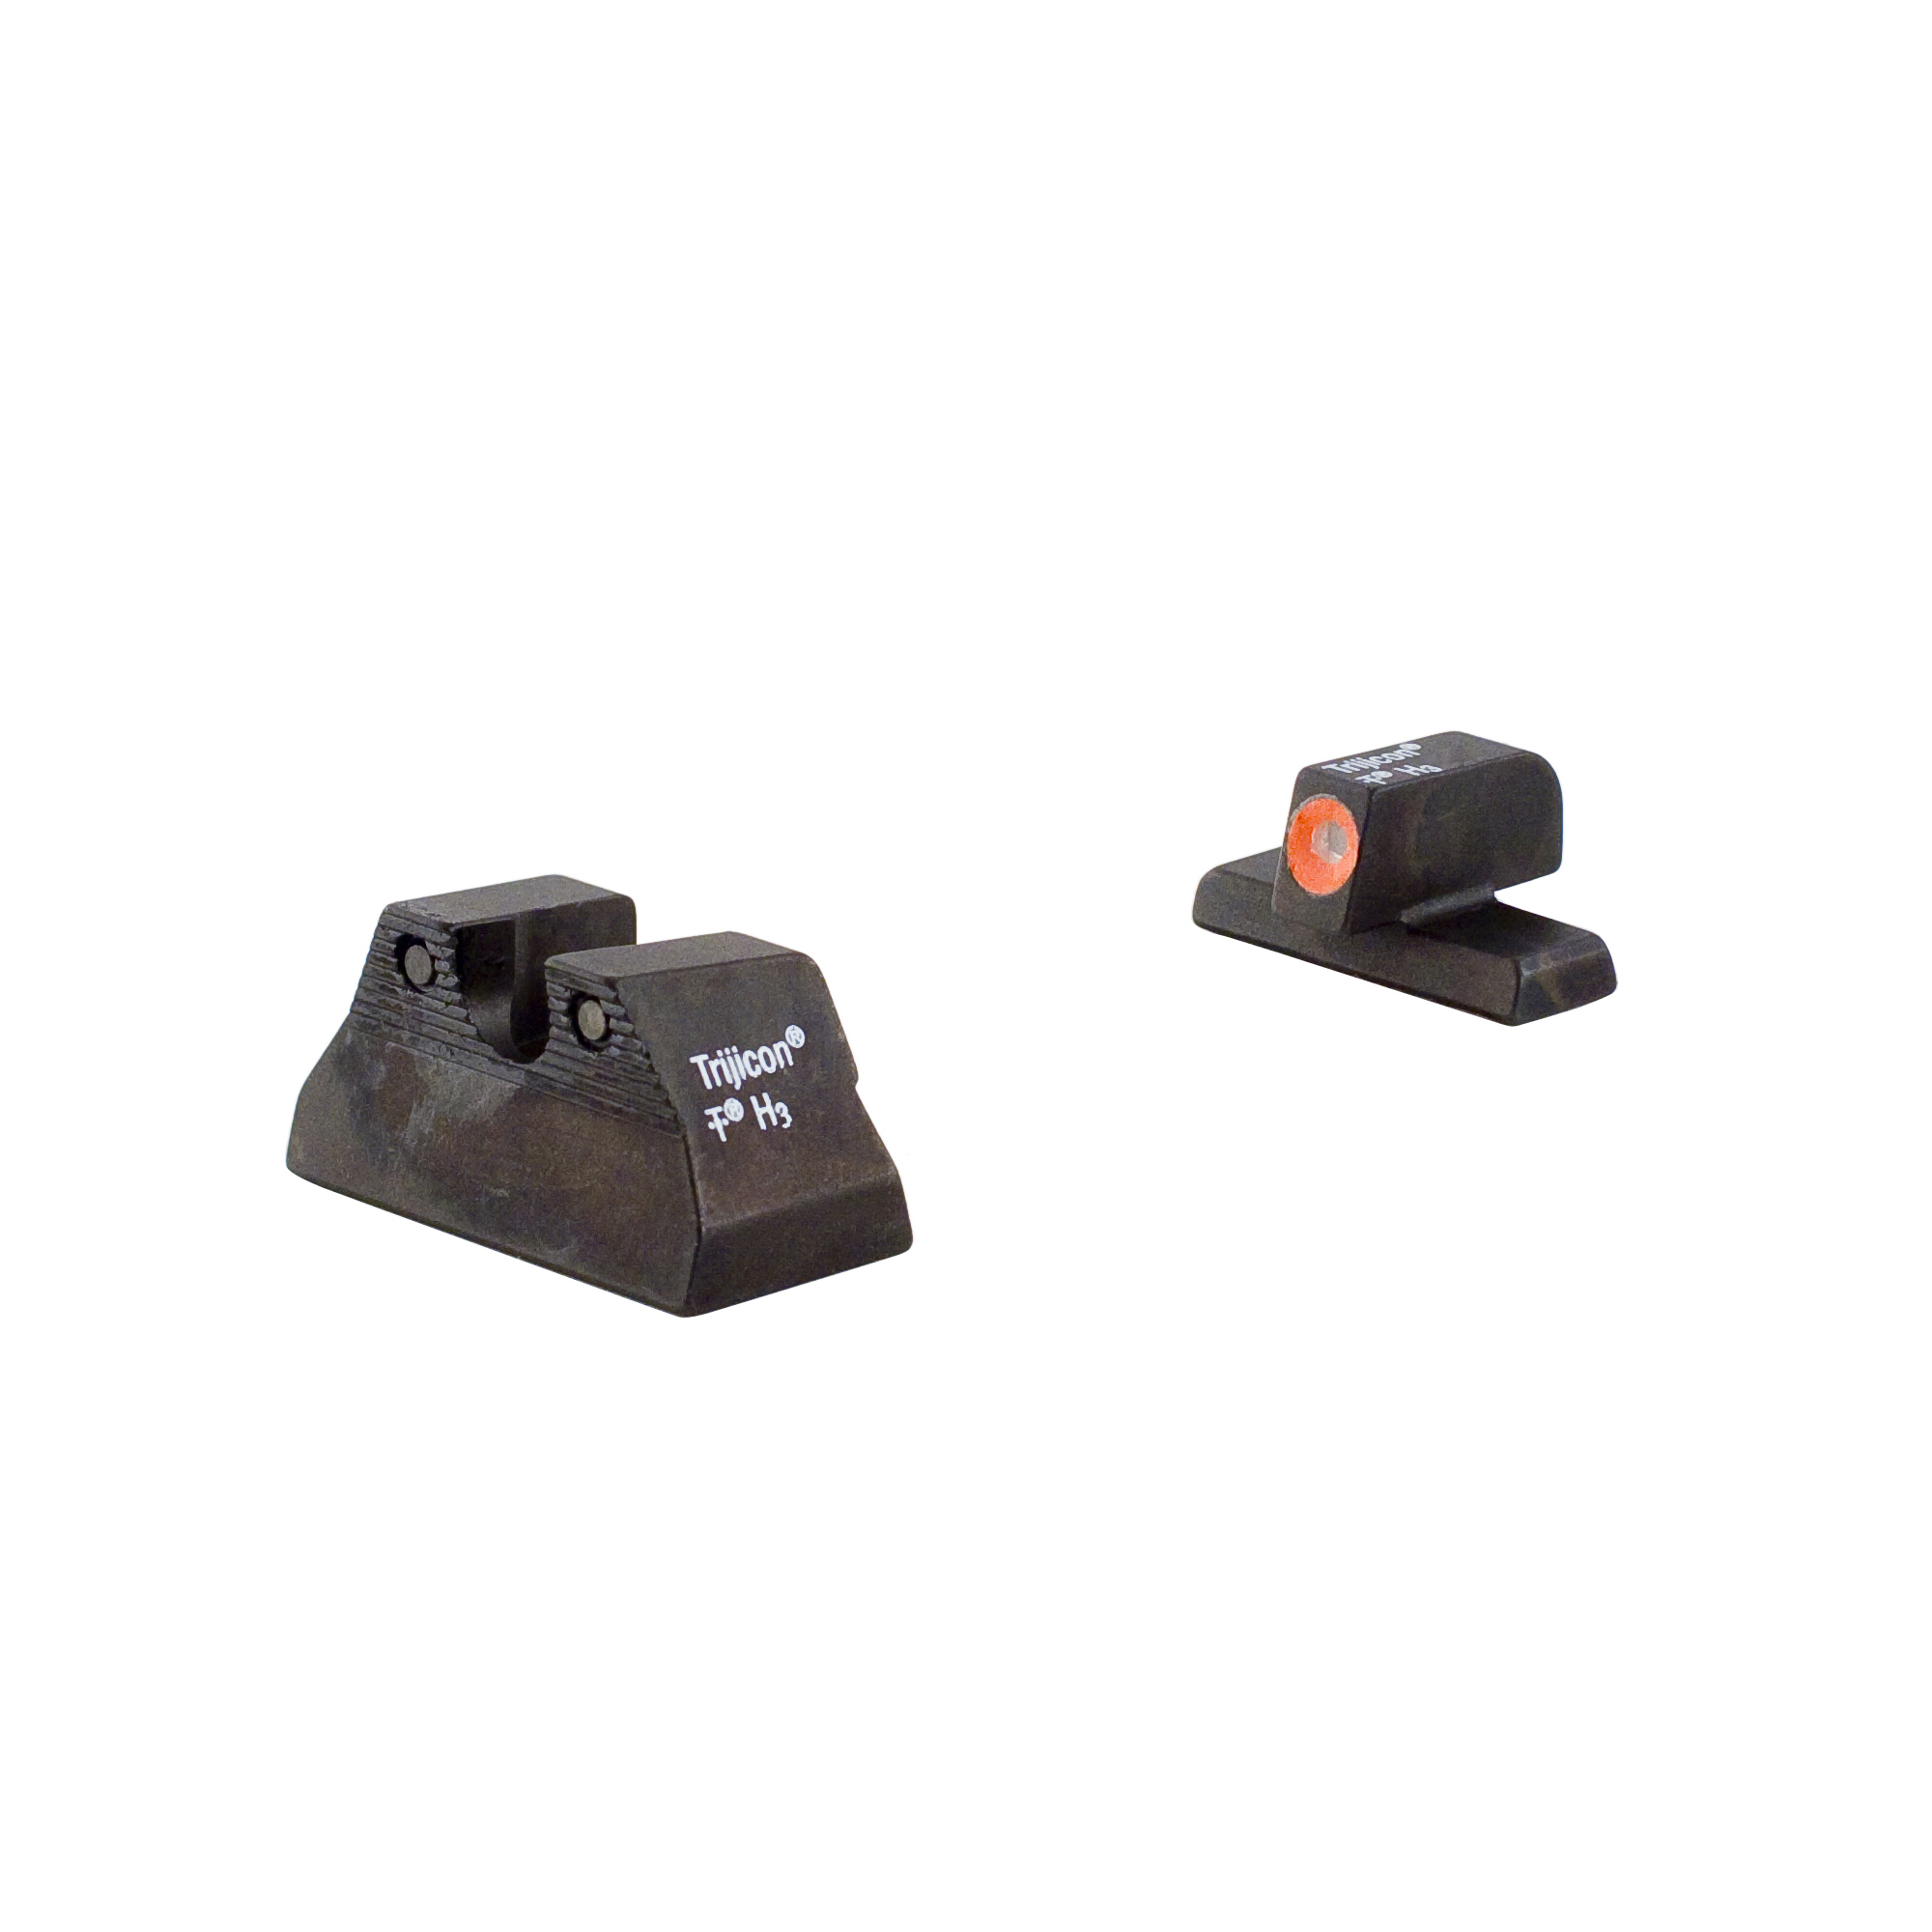 Trijicon H&K HD Night Sight Set USP Compact Models, Orange Front Outline Lamp by Trijicon